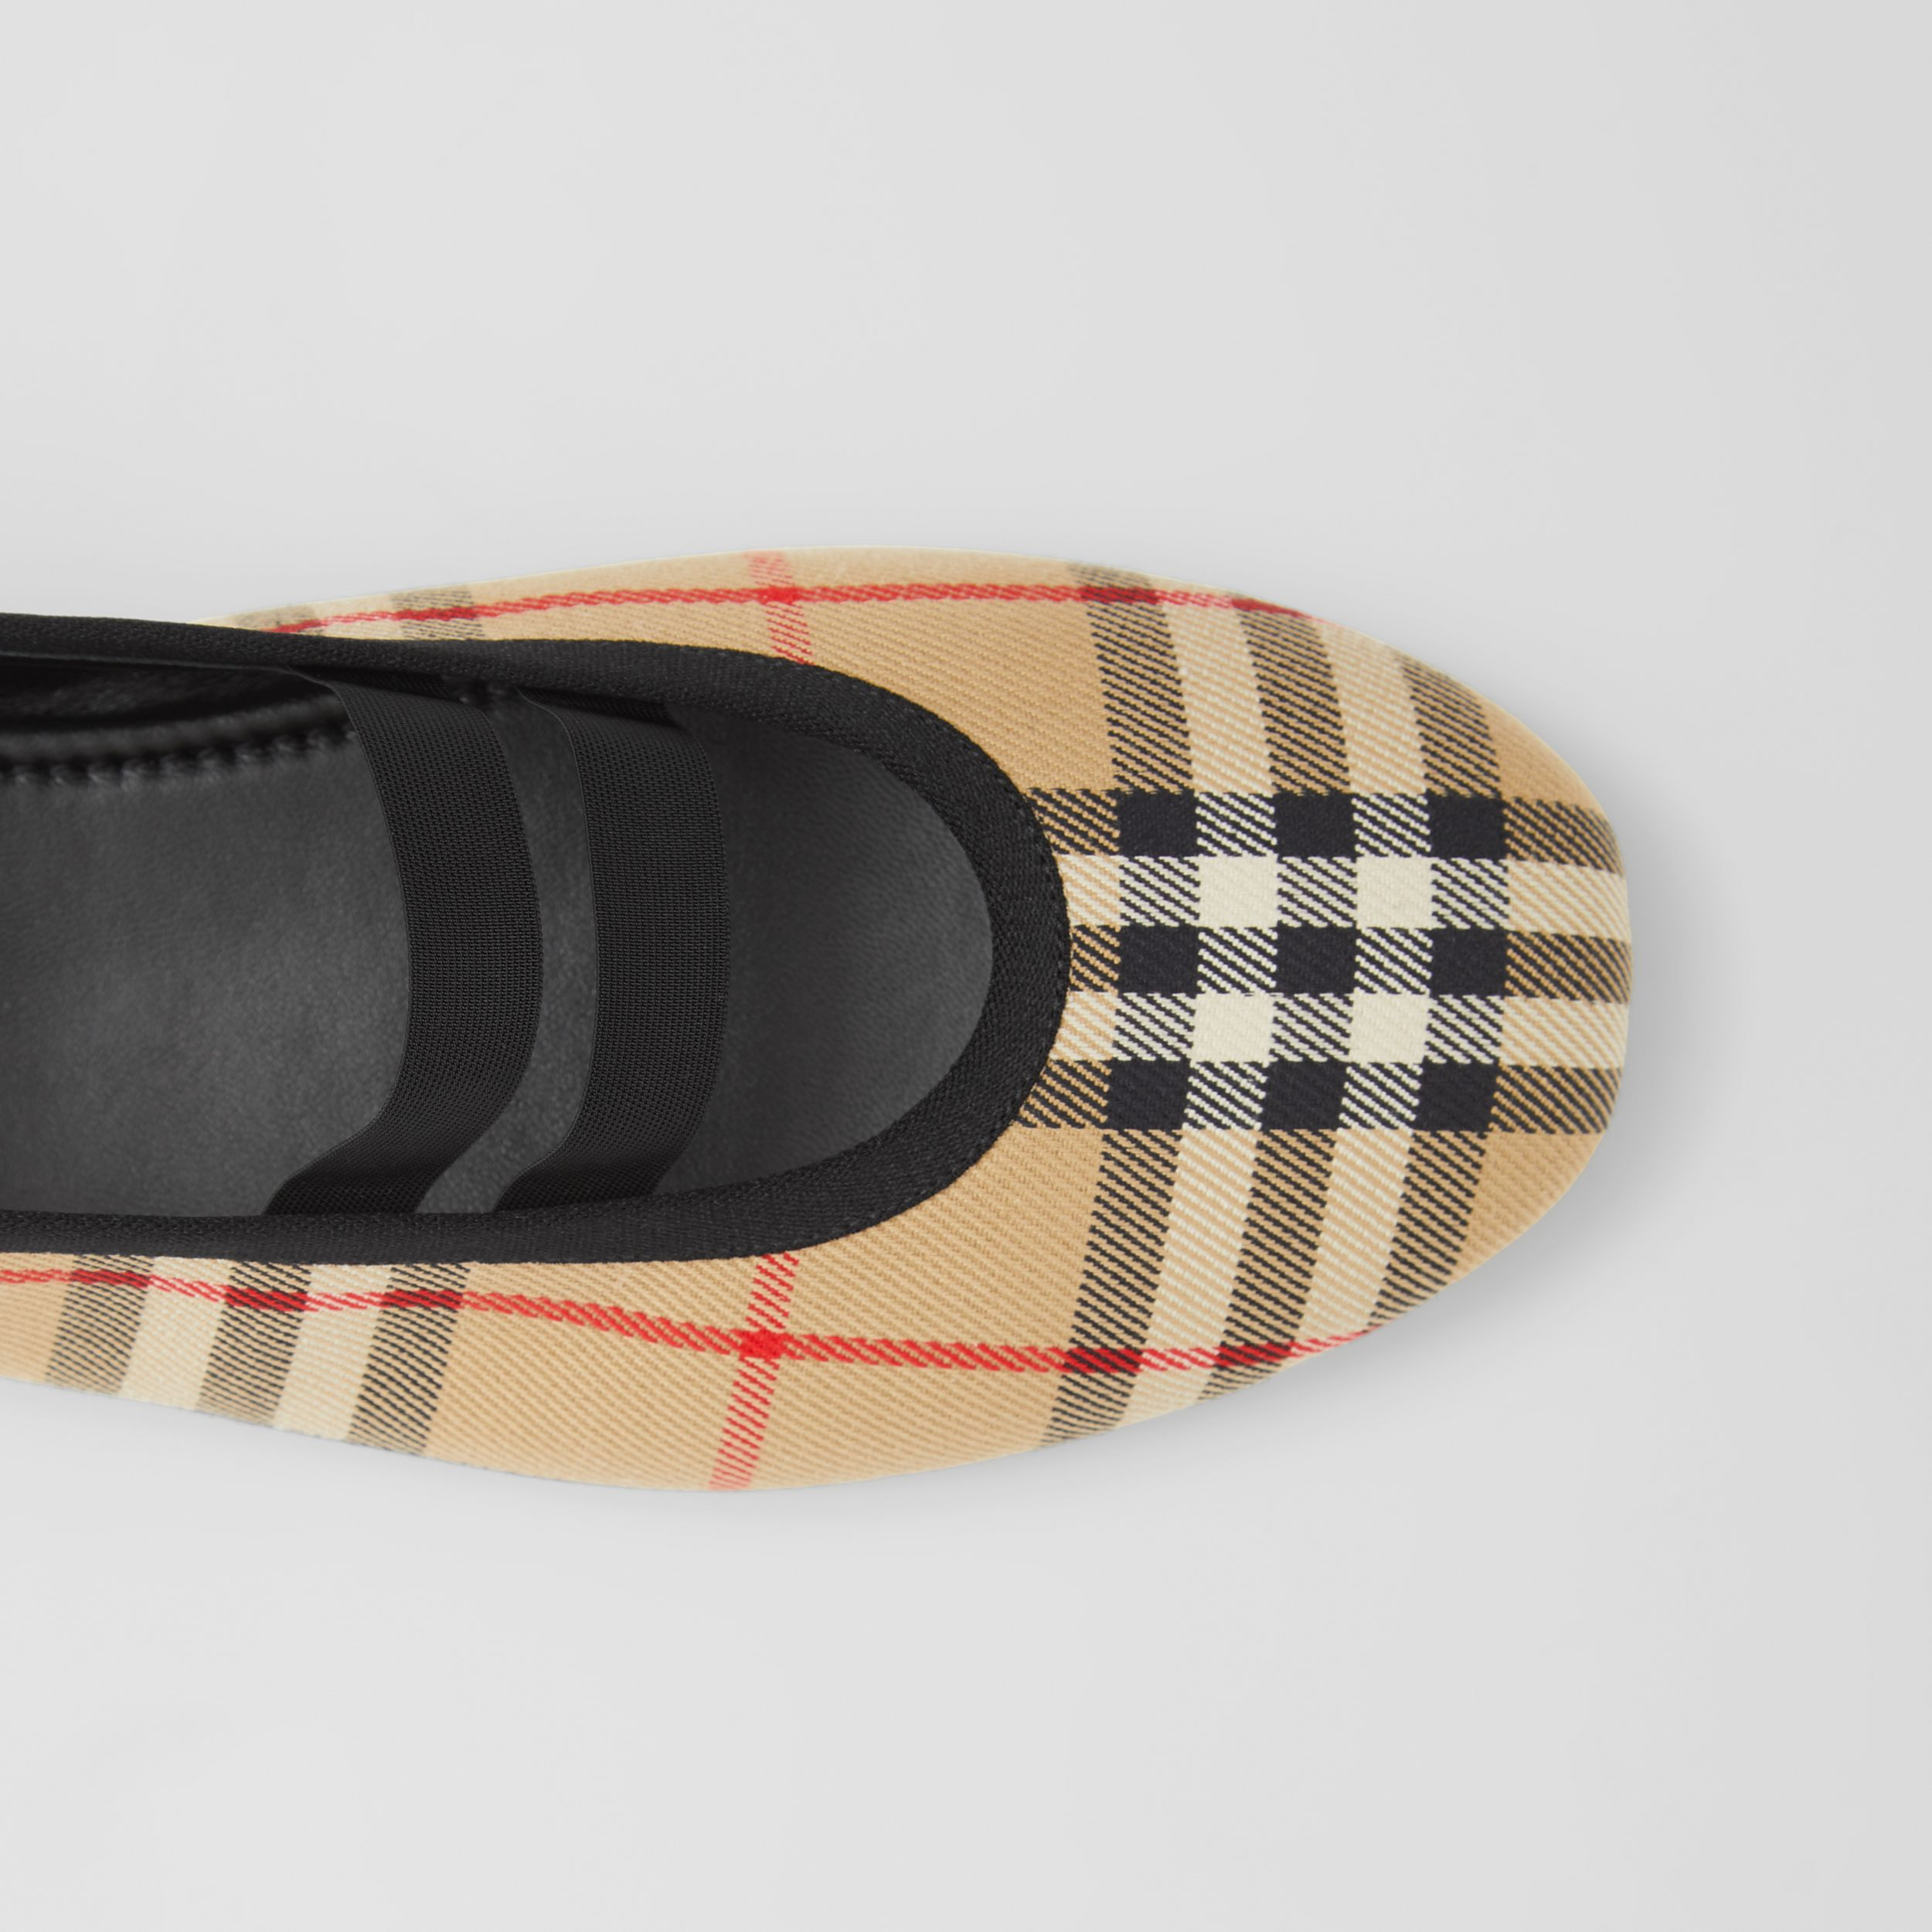 Logo Detail Vintage Check Cotton Ballerinas in Archive Beige - Women | Burberry United Kingdom - 2